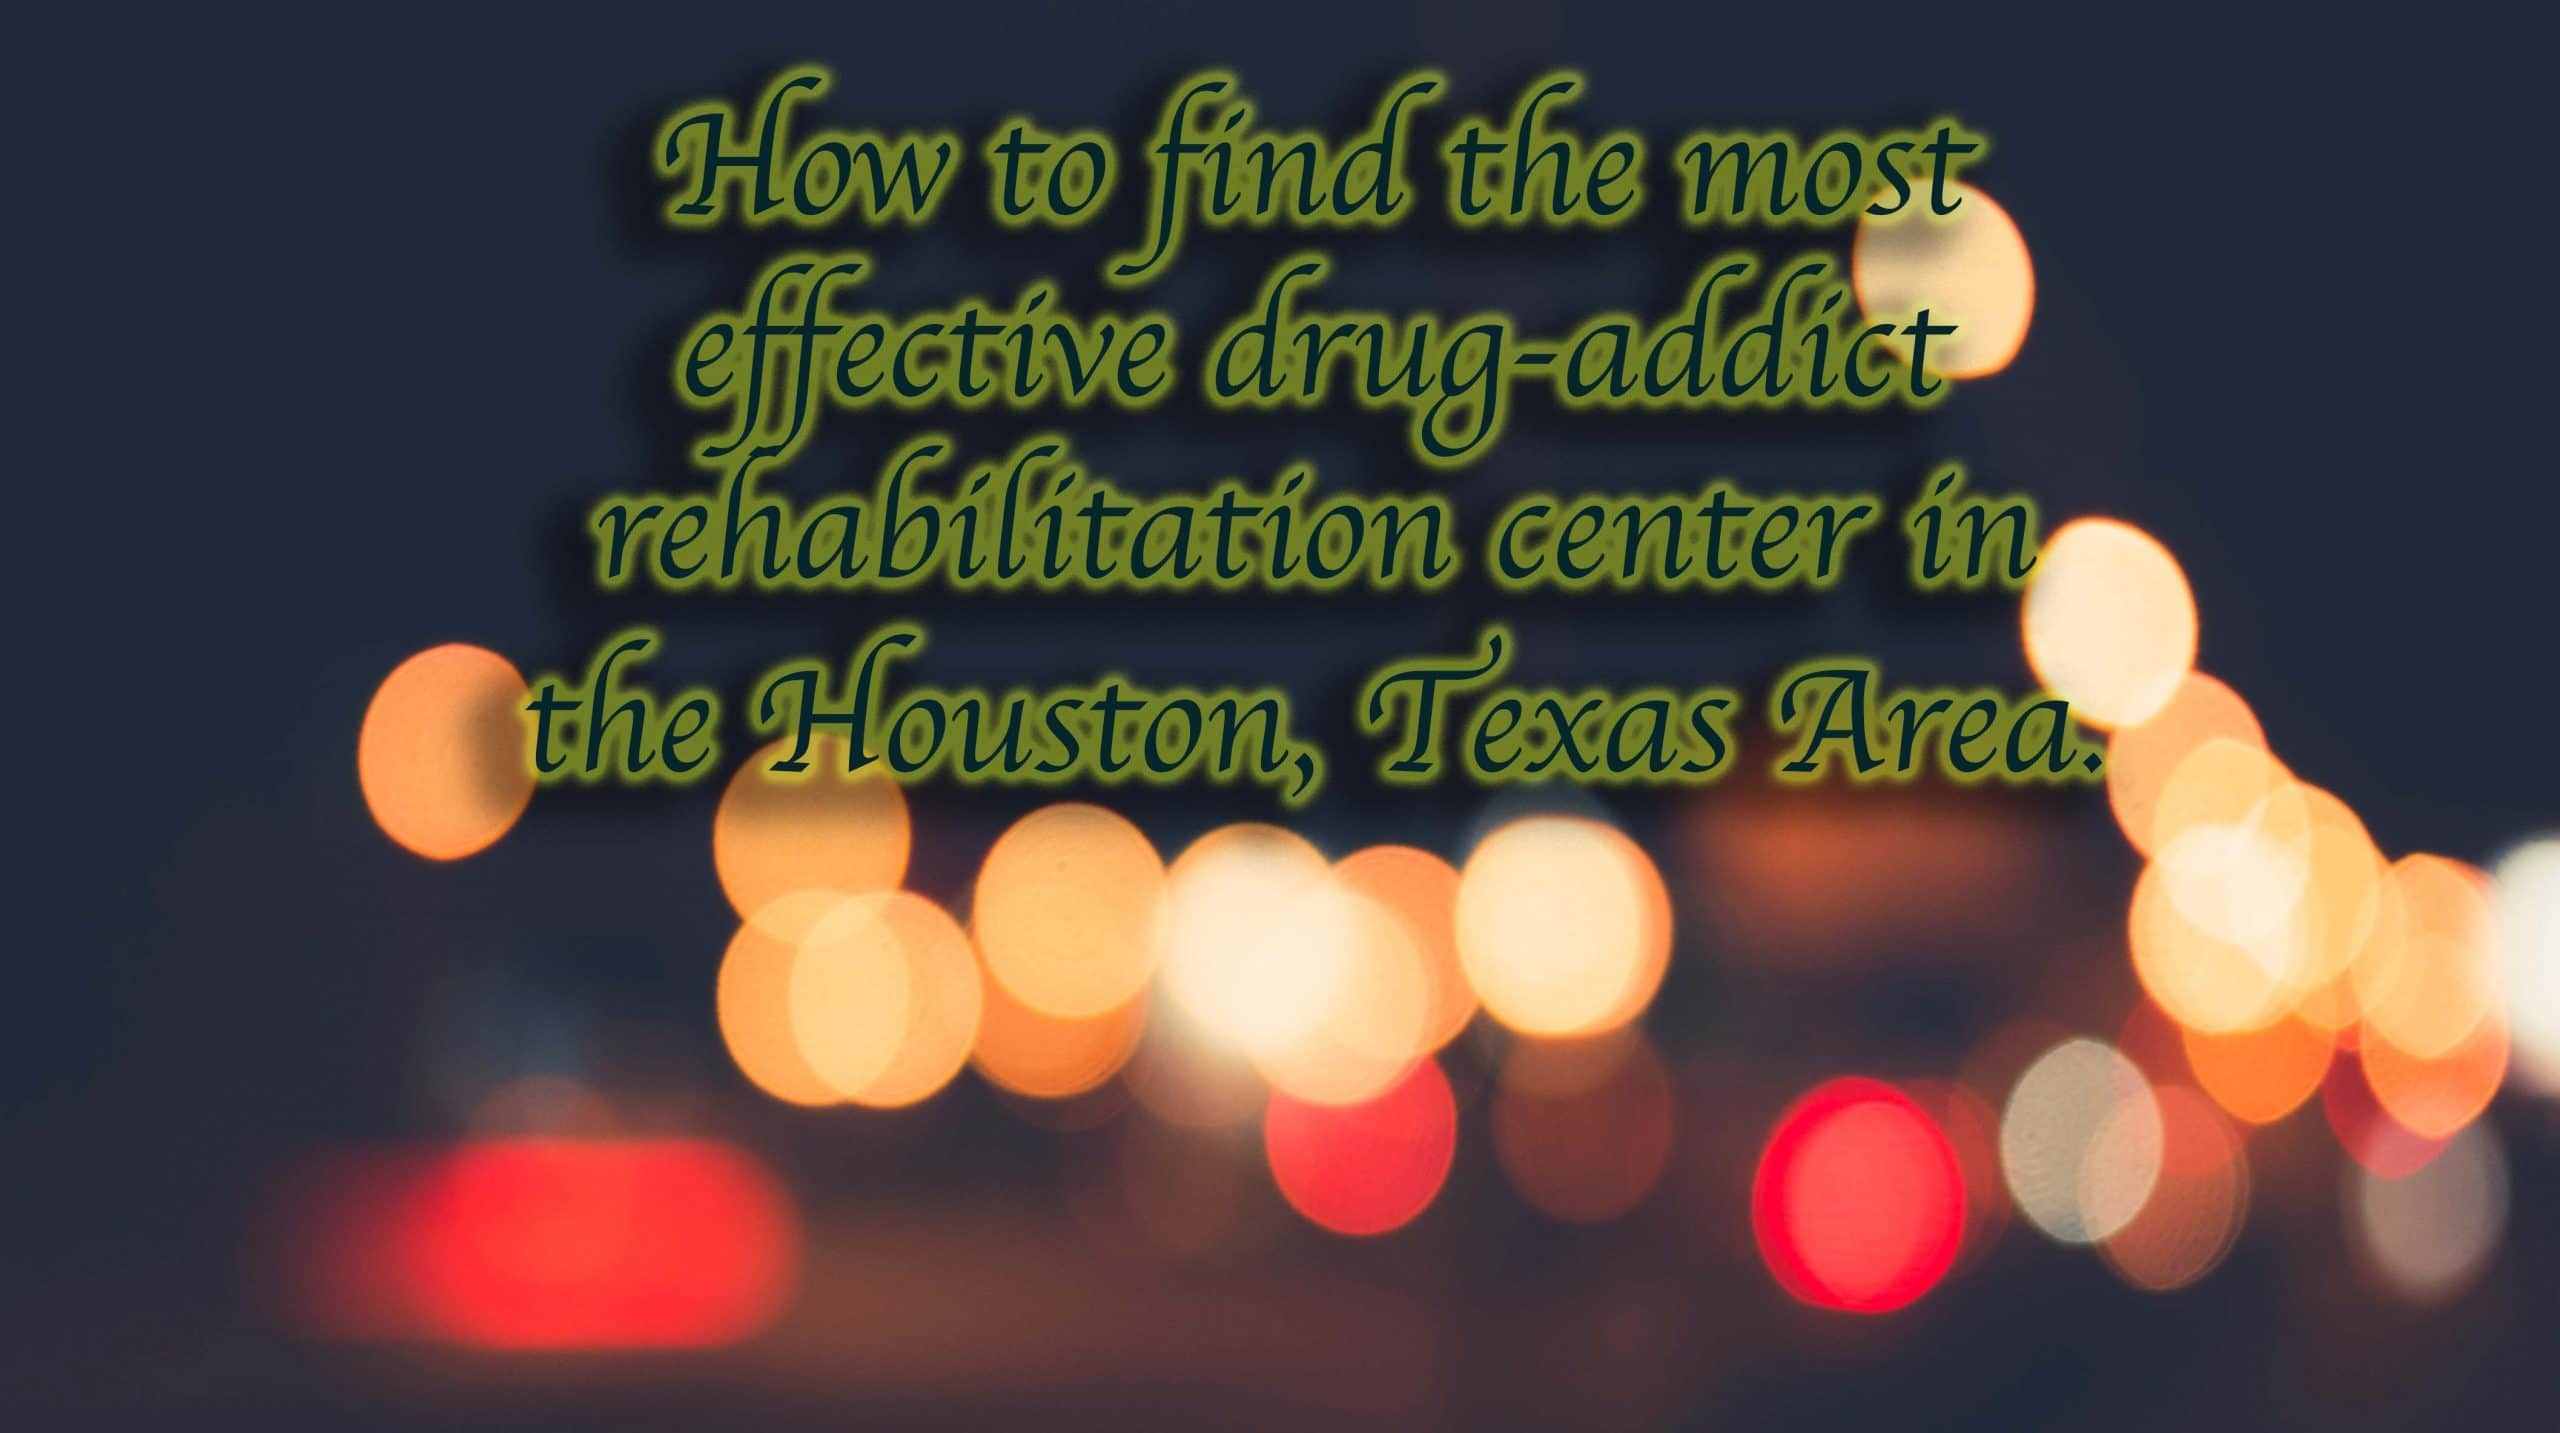 evidence-based-addiction-treatment-Houston-TX